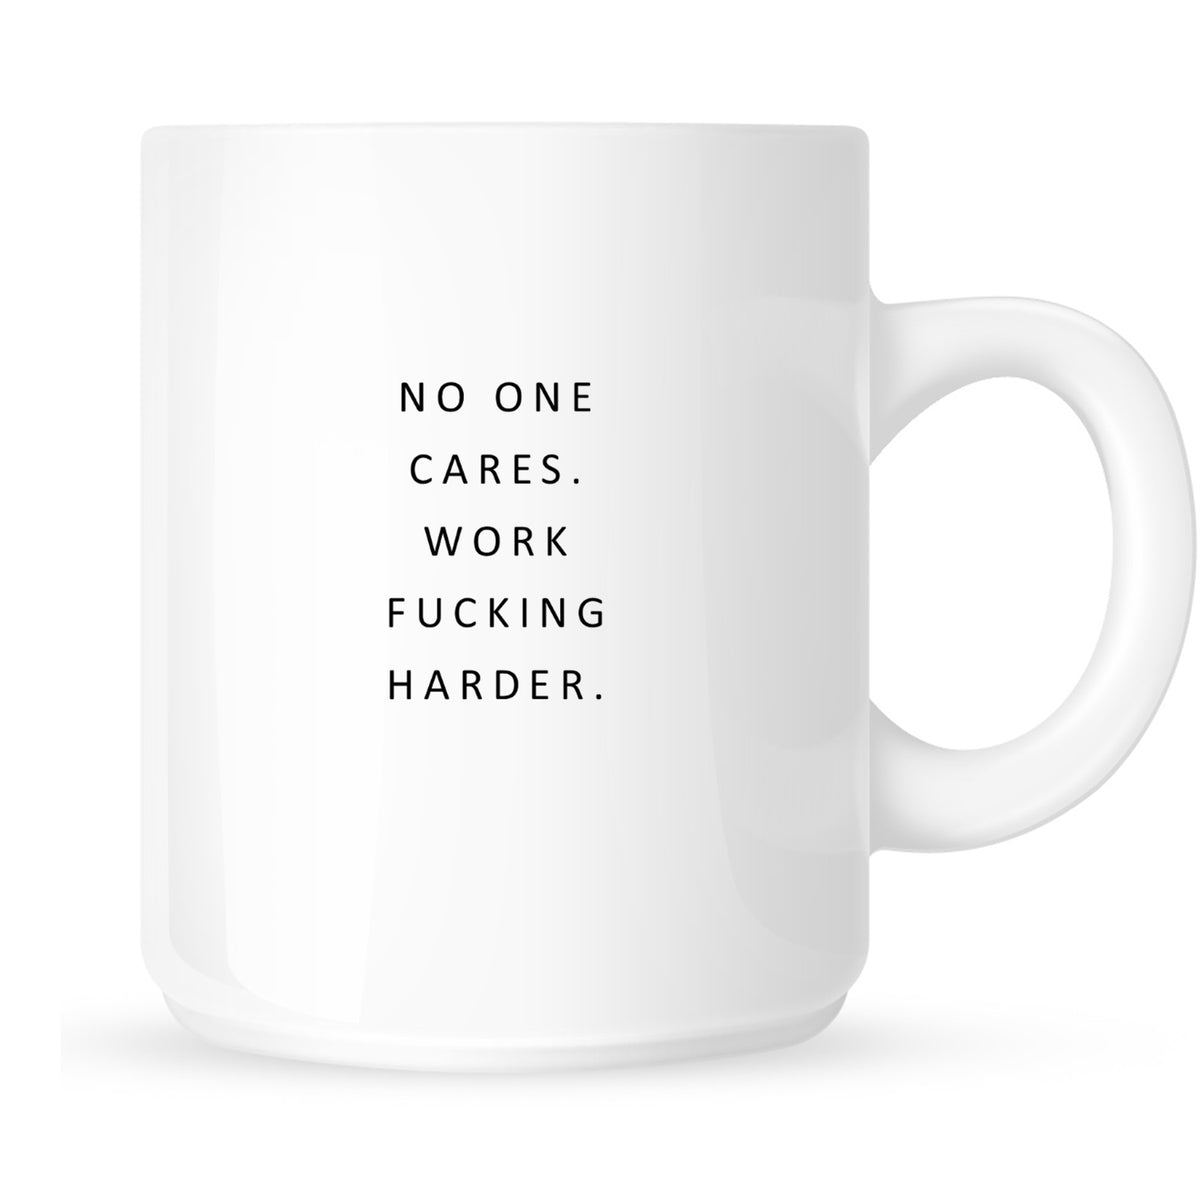 Mug - No One Cares. Work Fucking Harder.